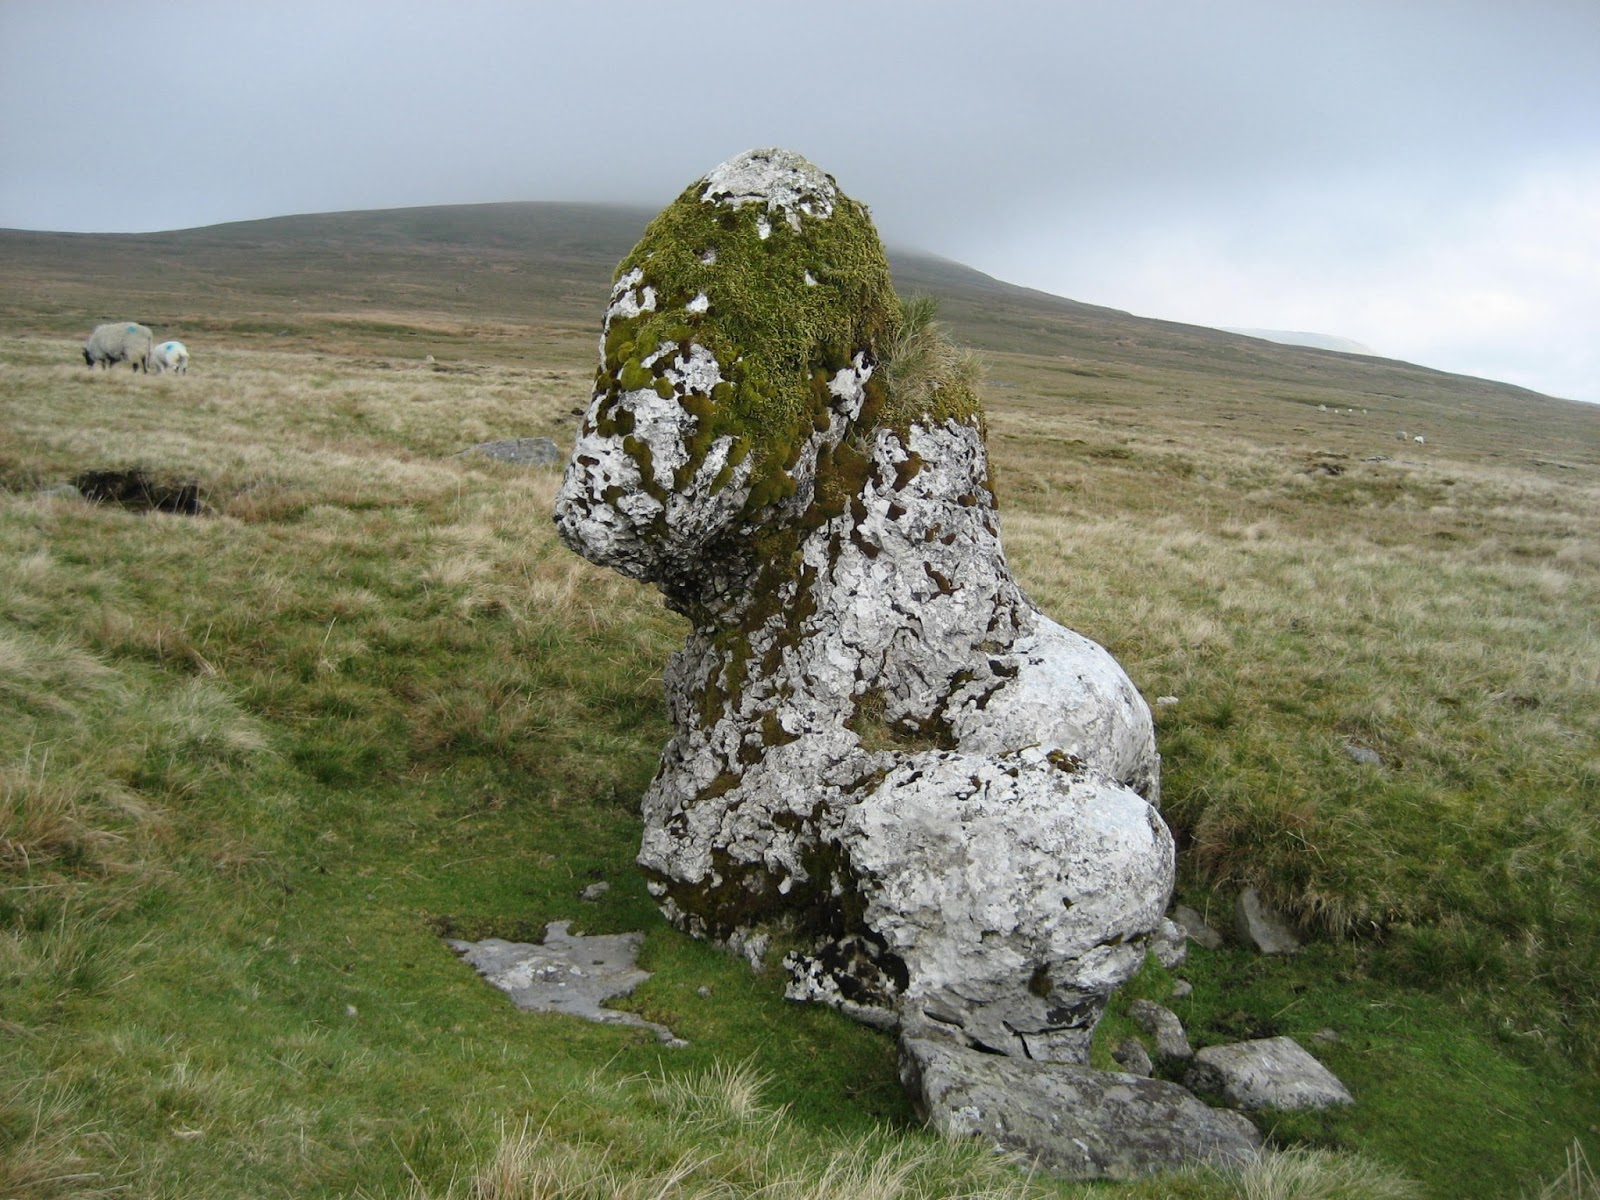 Harry Horse Stone – a boulder deposited on the drift of Newby Moss by a retreating ice sheet. Stephen Oldfield